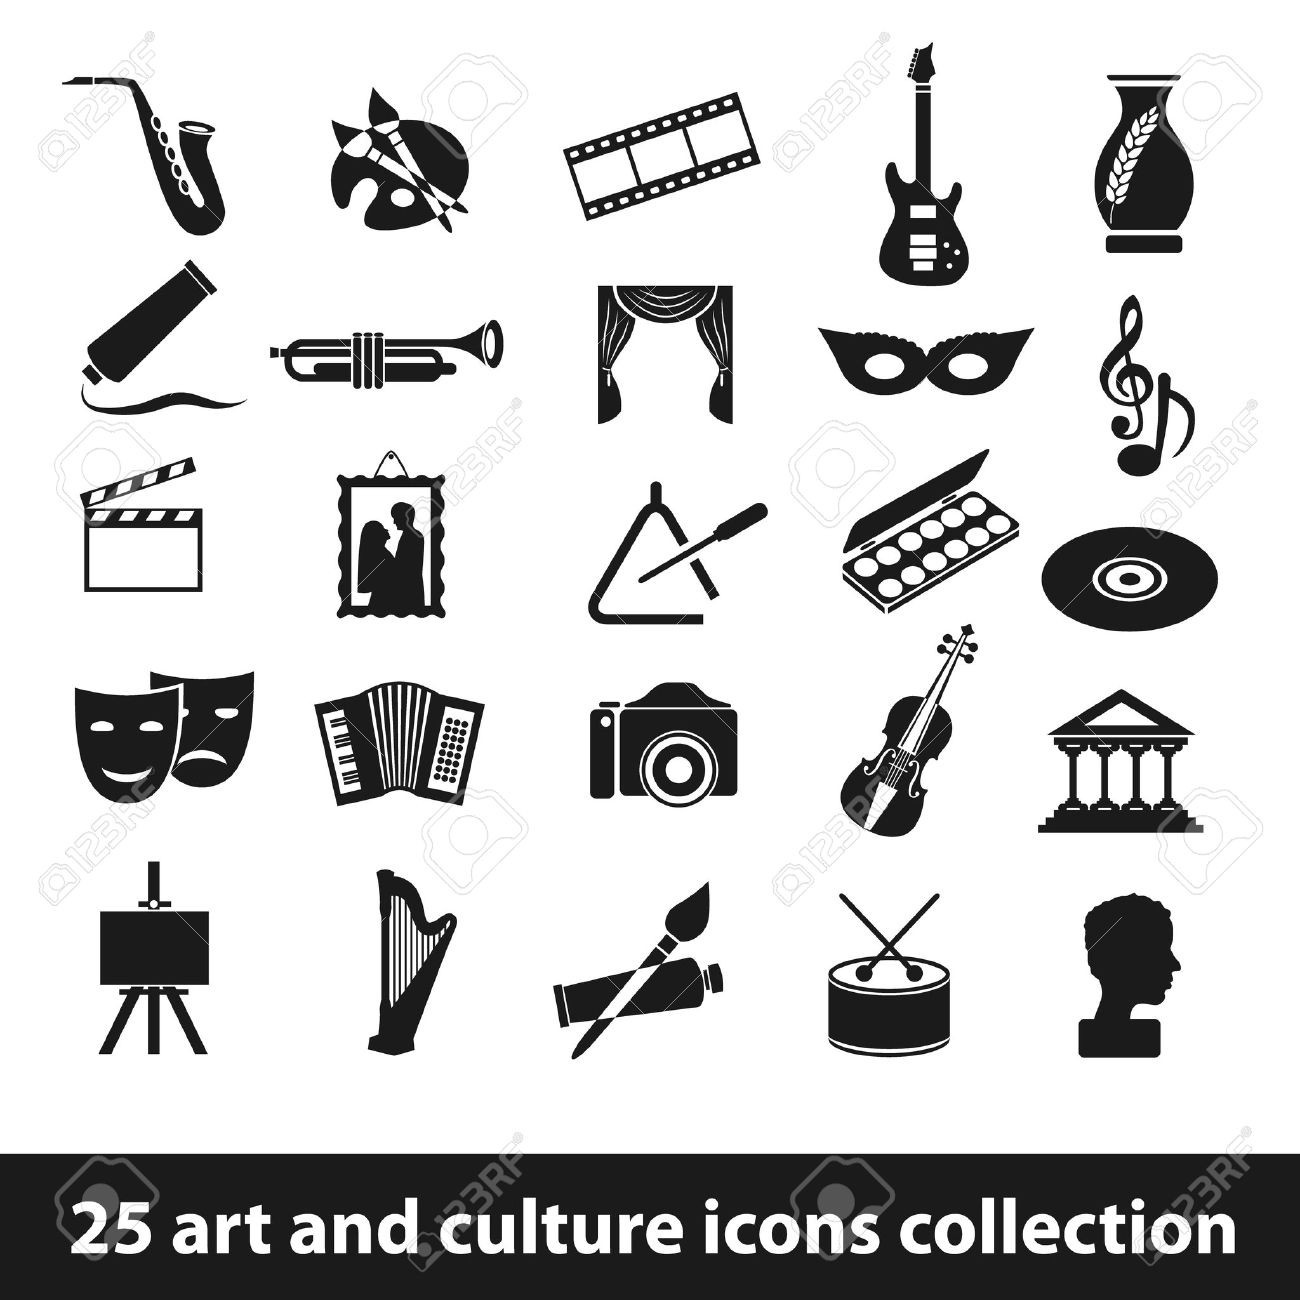 718110 culture stock vector illustration and royalty free culture 25 art and culture icon collection buycottarizona Image collections